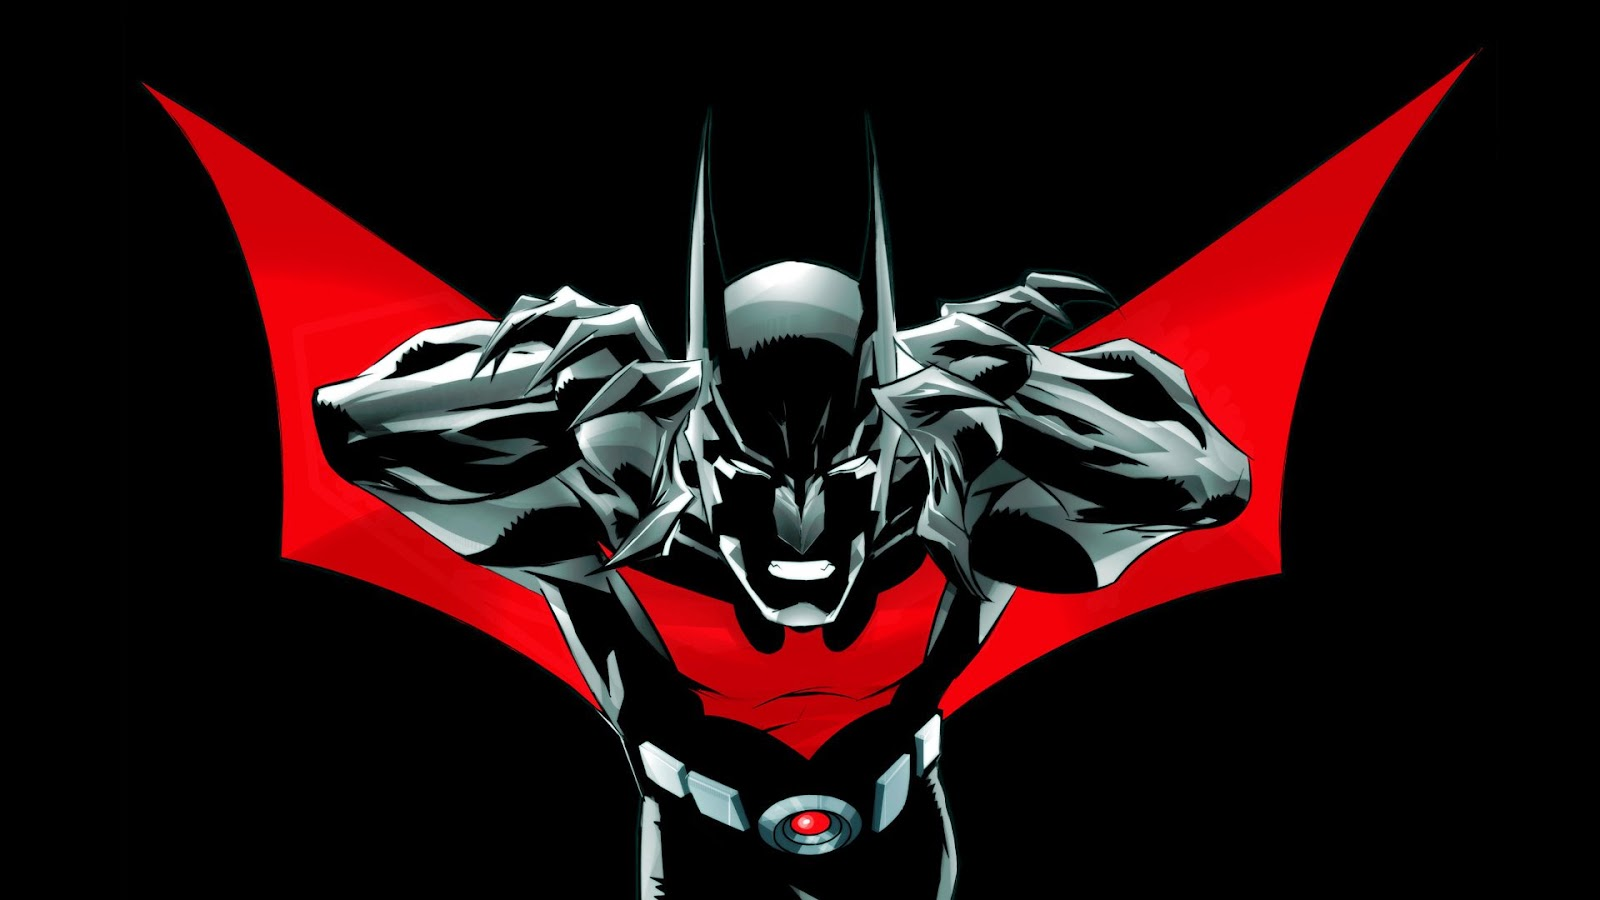 Batman Beyond Wallpapers | HD Wallpapers, HD Pictures, HD Screensavers, Background Images free